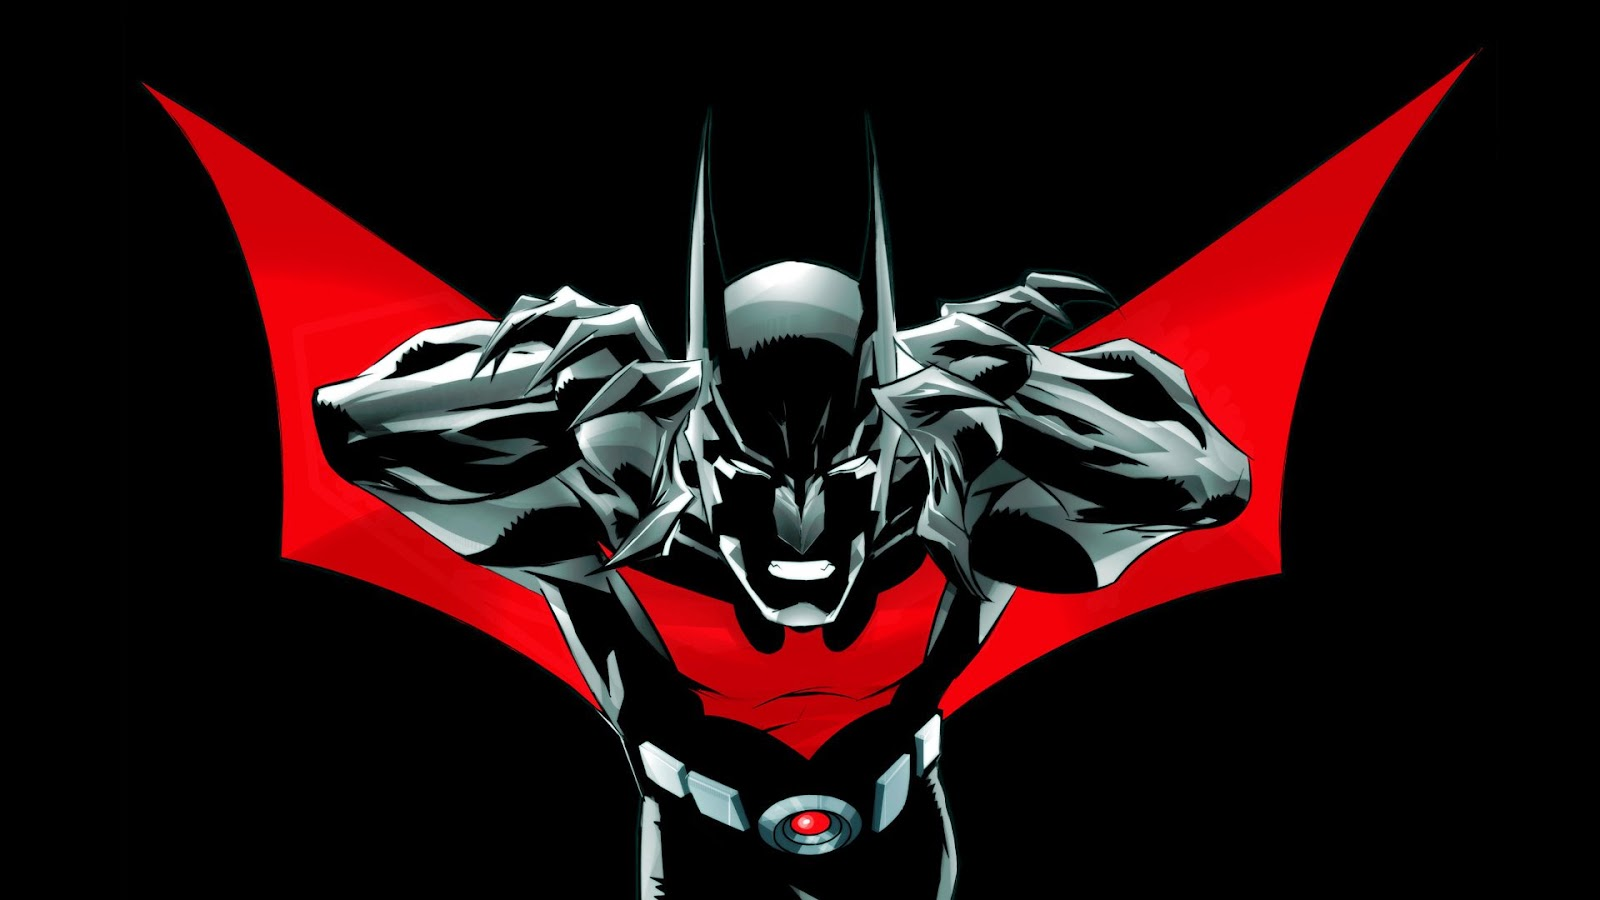 Batman Beyond Wallpapers | HD Wallpapers, HD Pictures, HD Screensavers, Background Images free